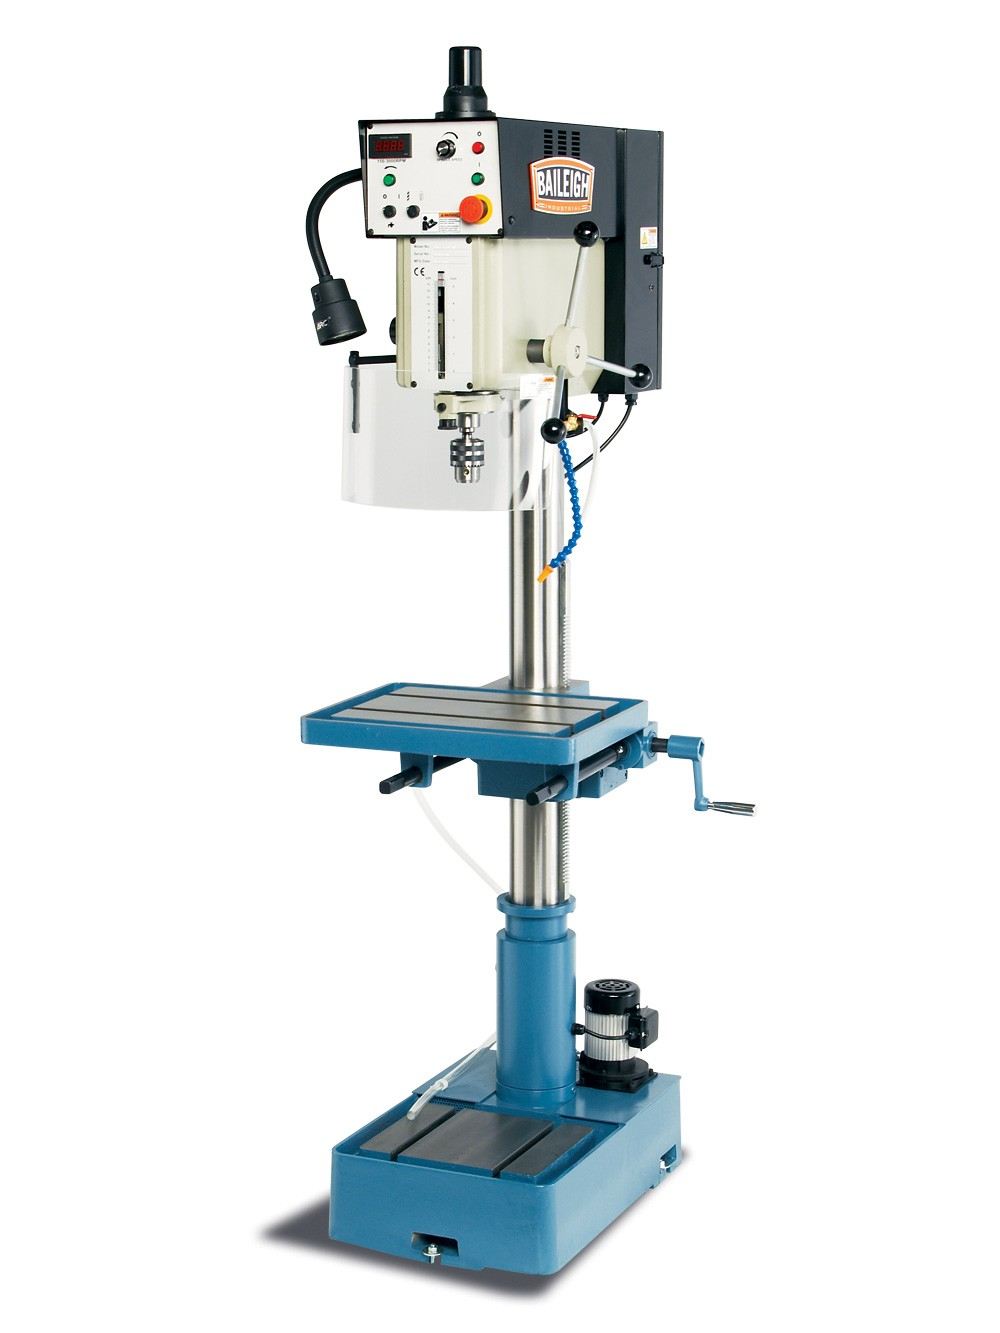 drill press Benchtop and floor model drill presses used for drilling and tapping in steel, aluminum, and more.